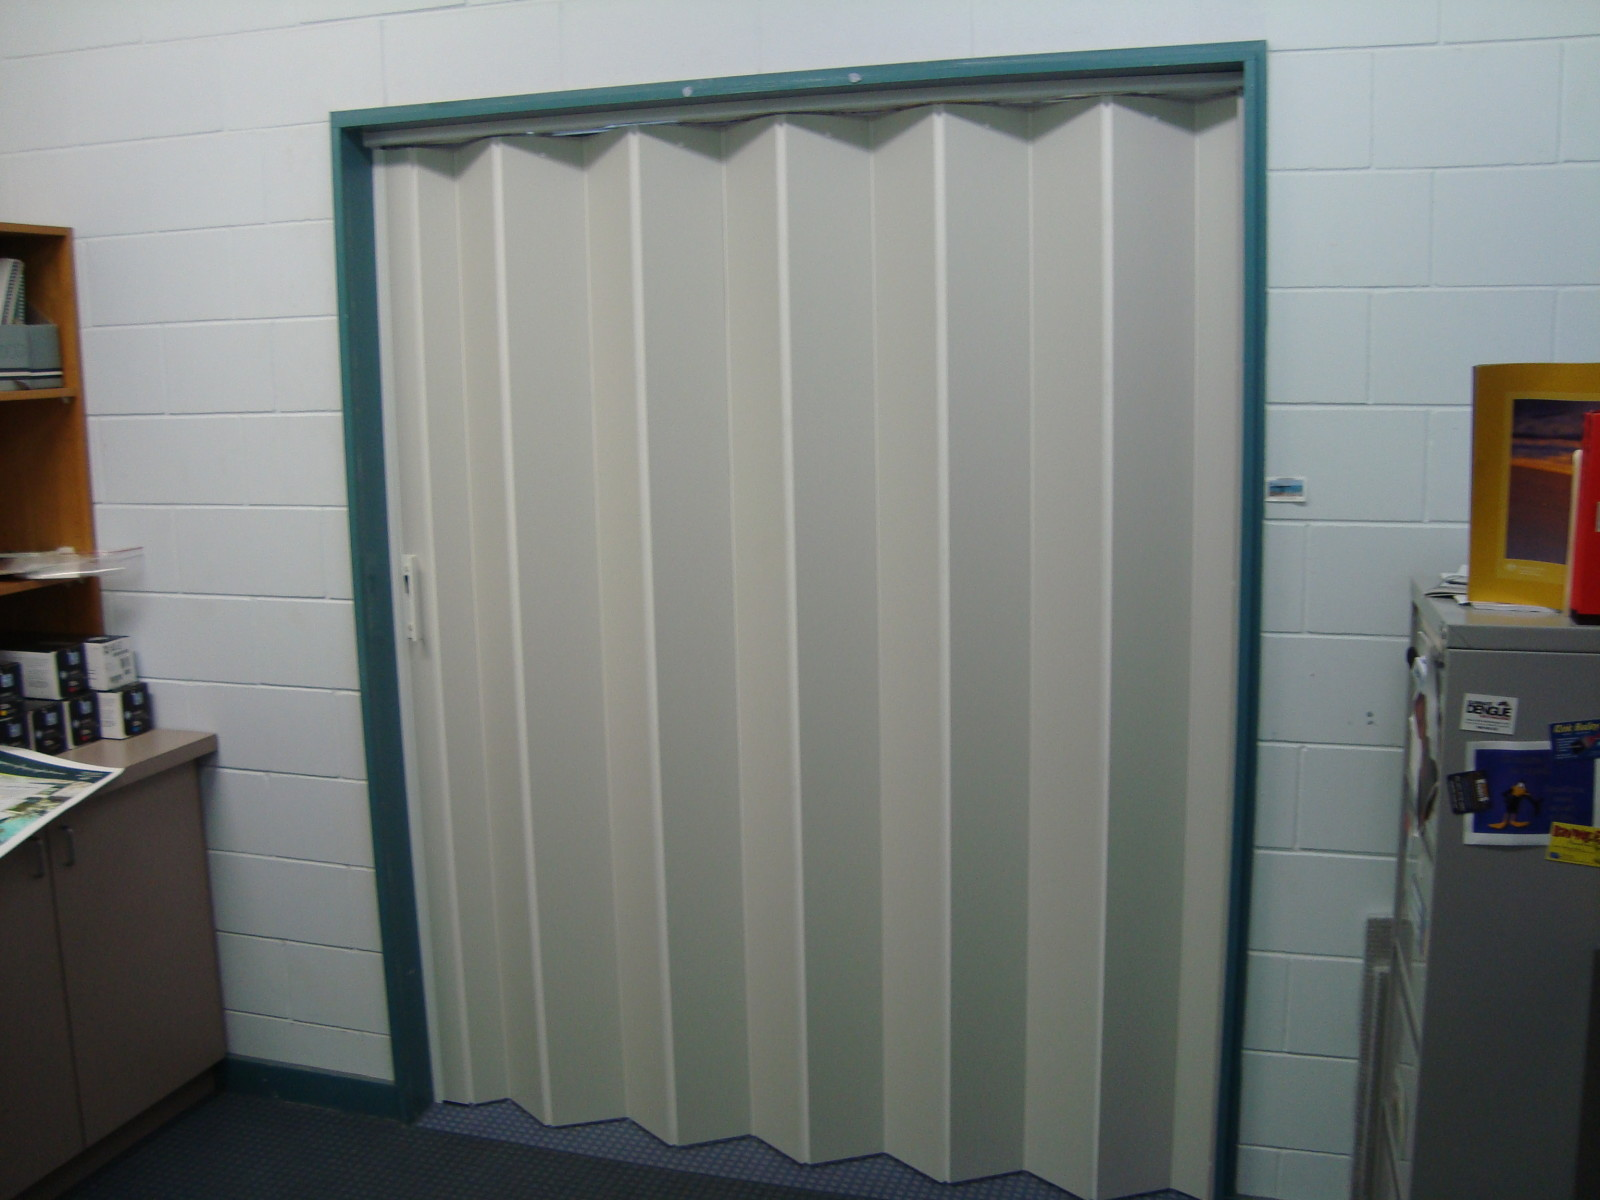 Folding Concertina Doors & Folding Concertina Doors Acoustic Sound Rated Doors | Blinds ... Pezcame.Com